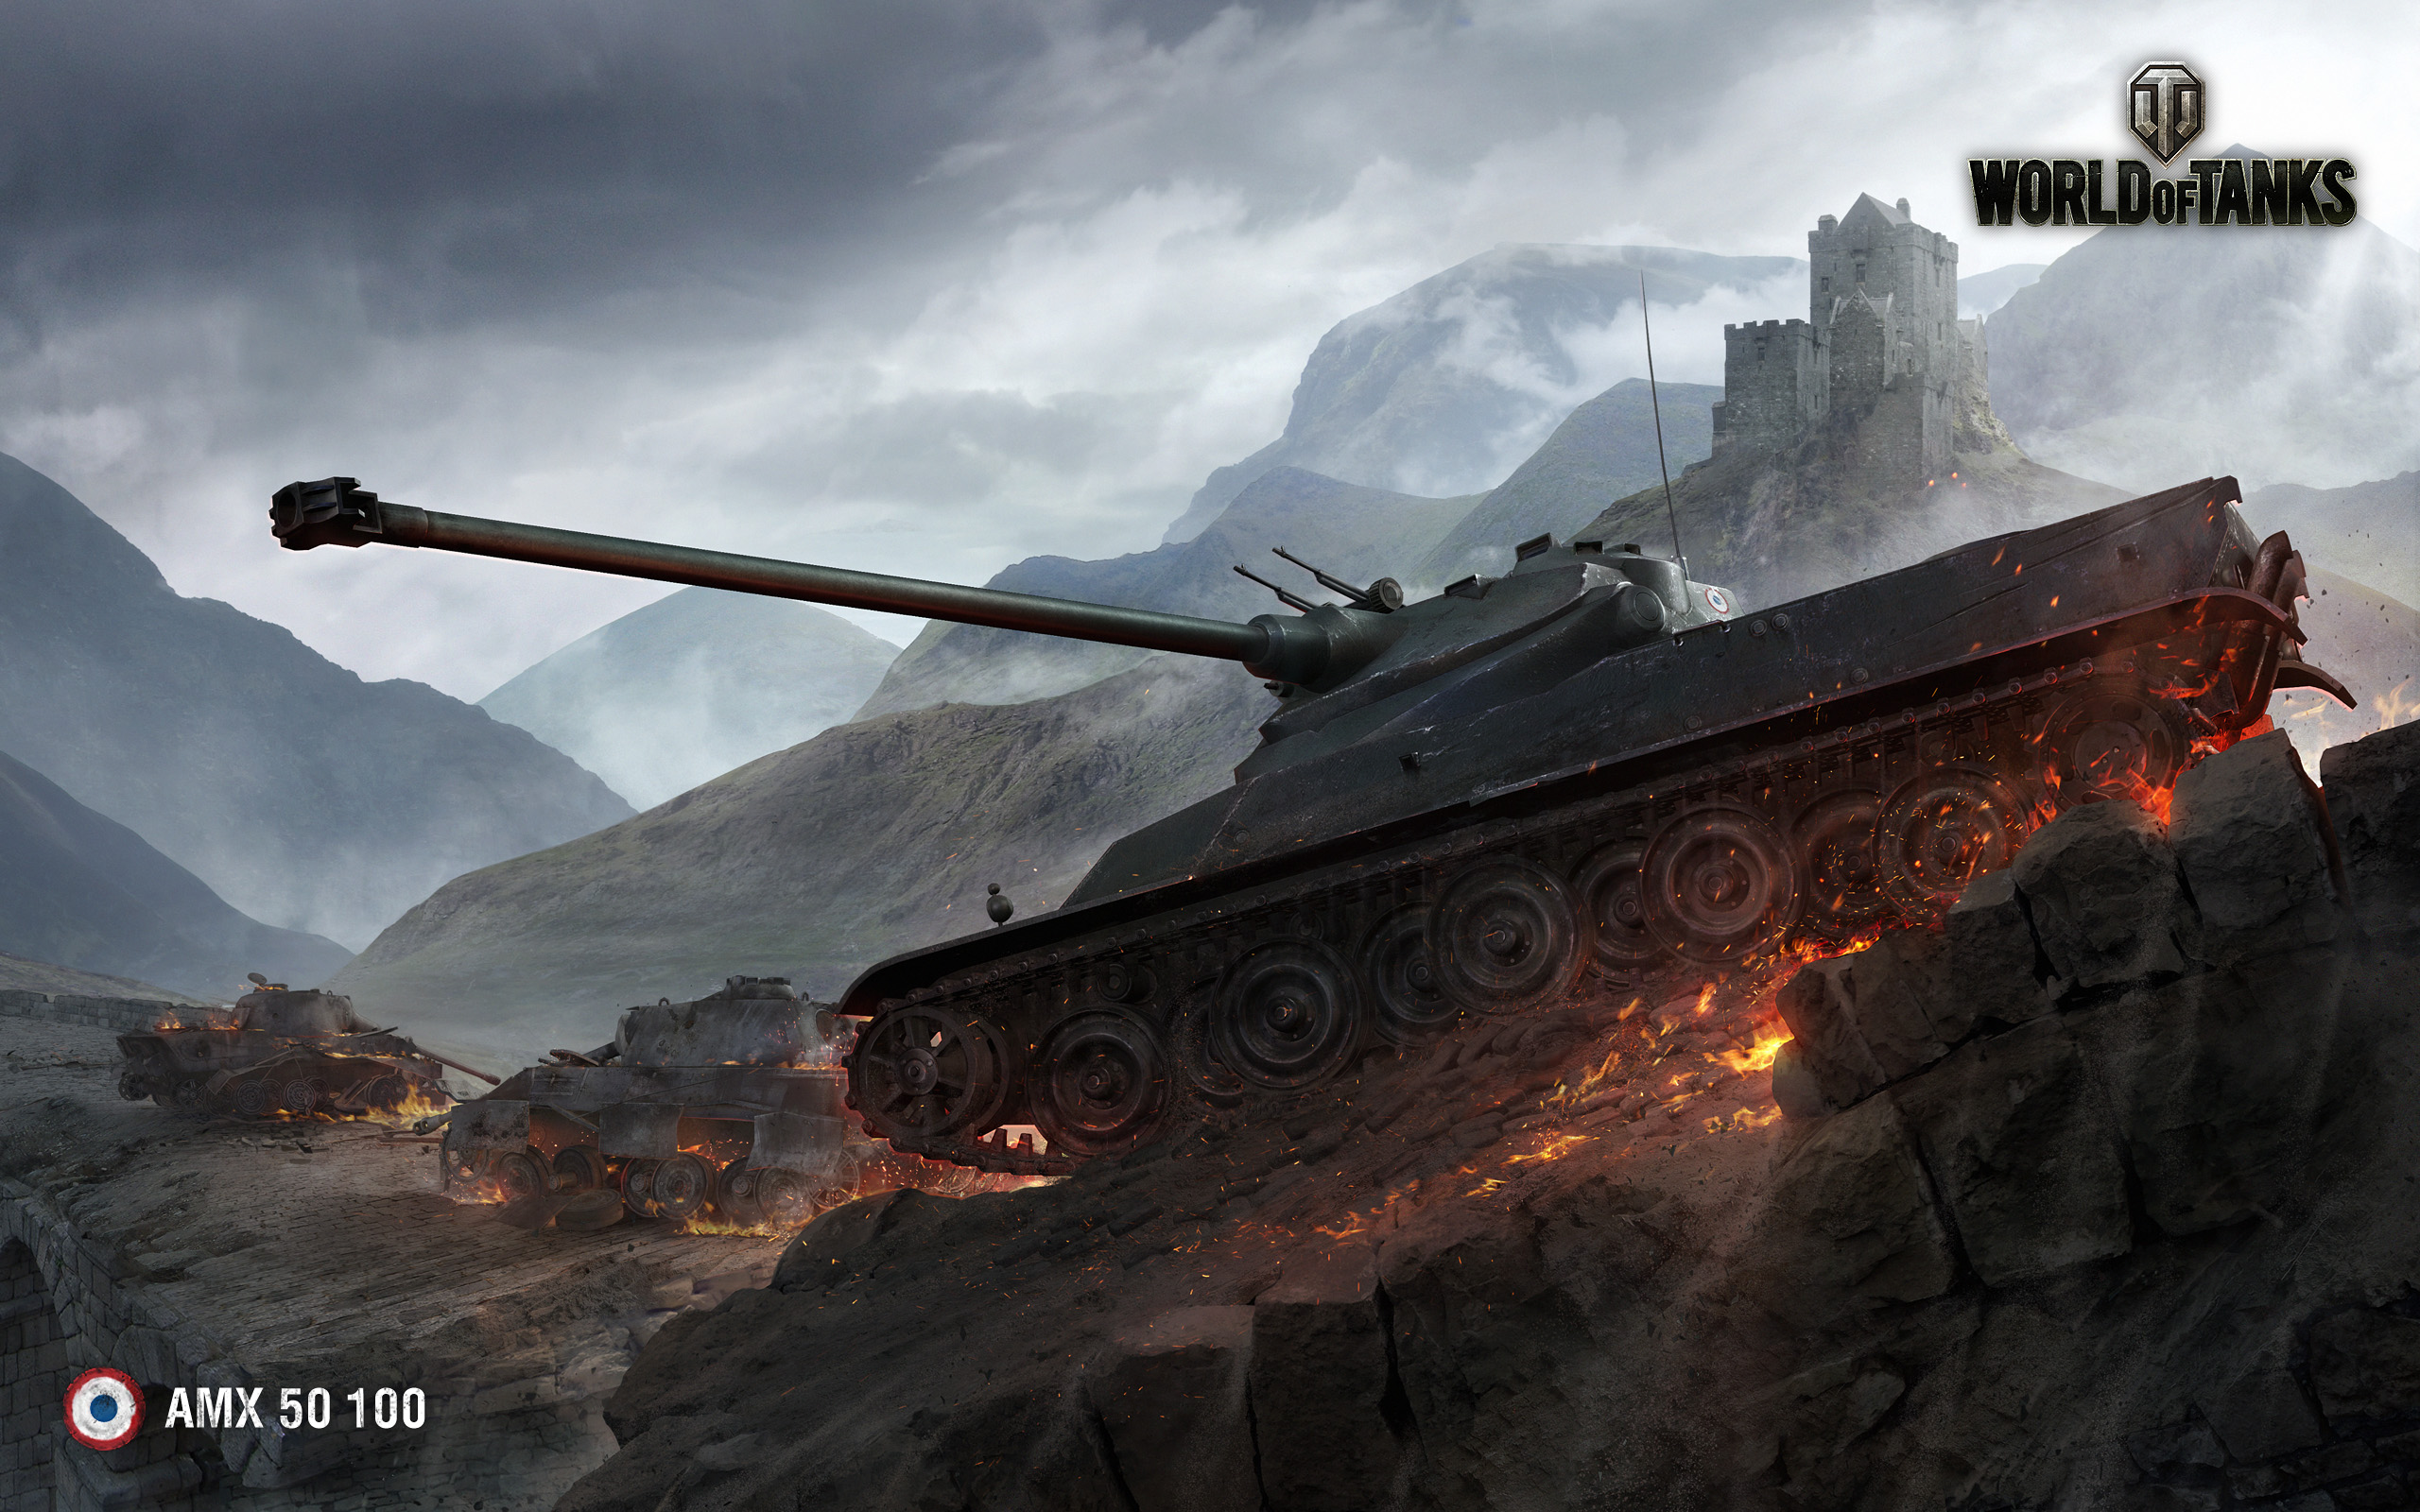 wallpaper for march 2014 art world of tanks